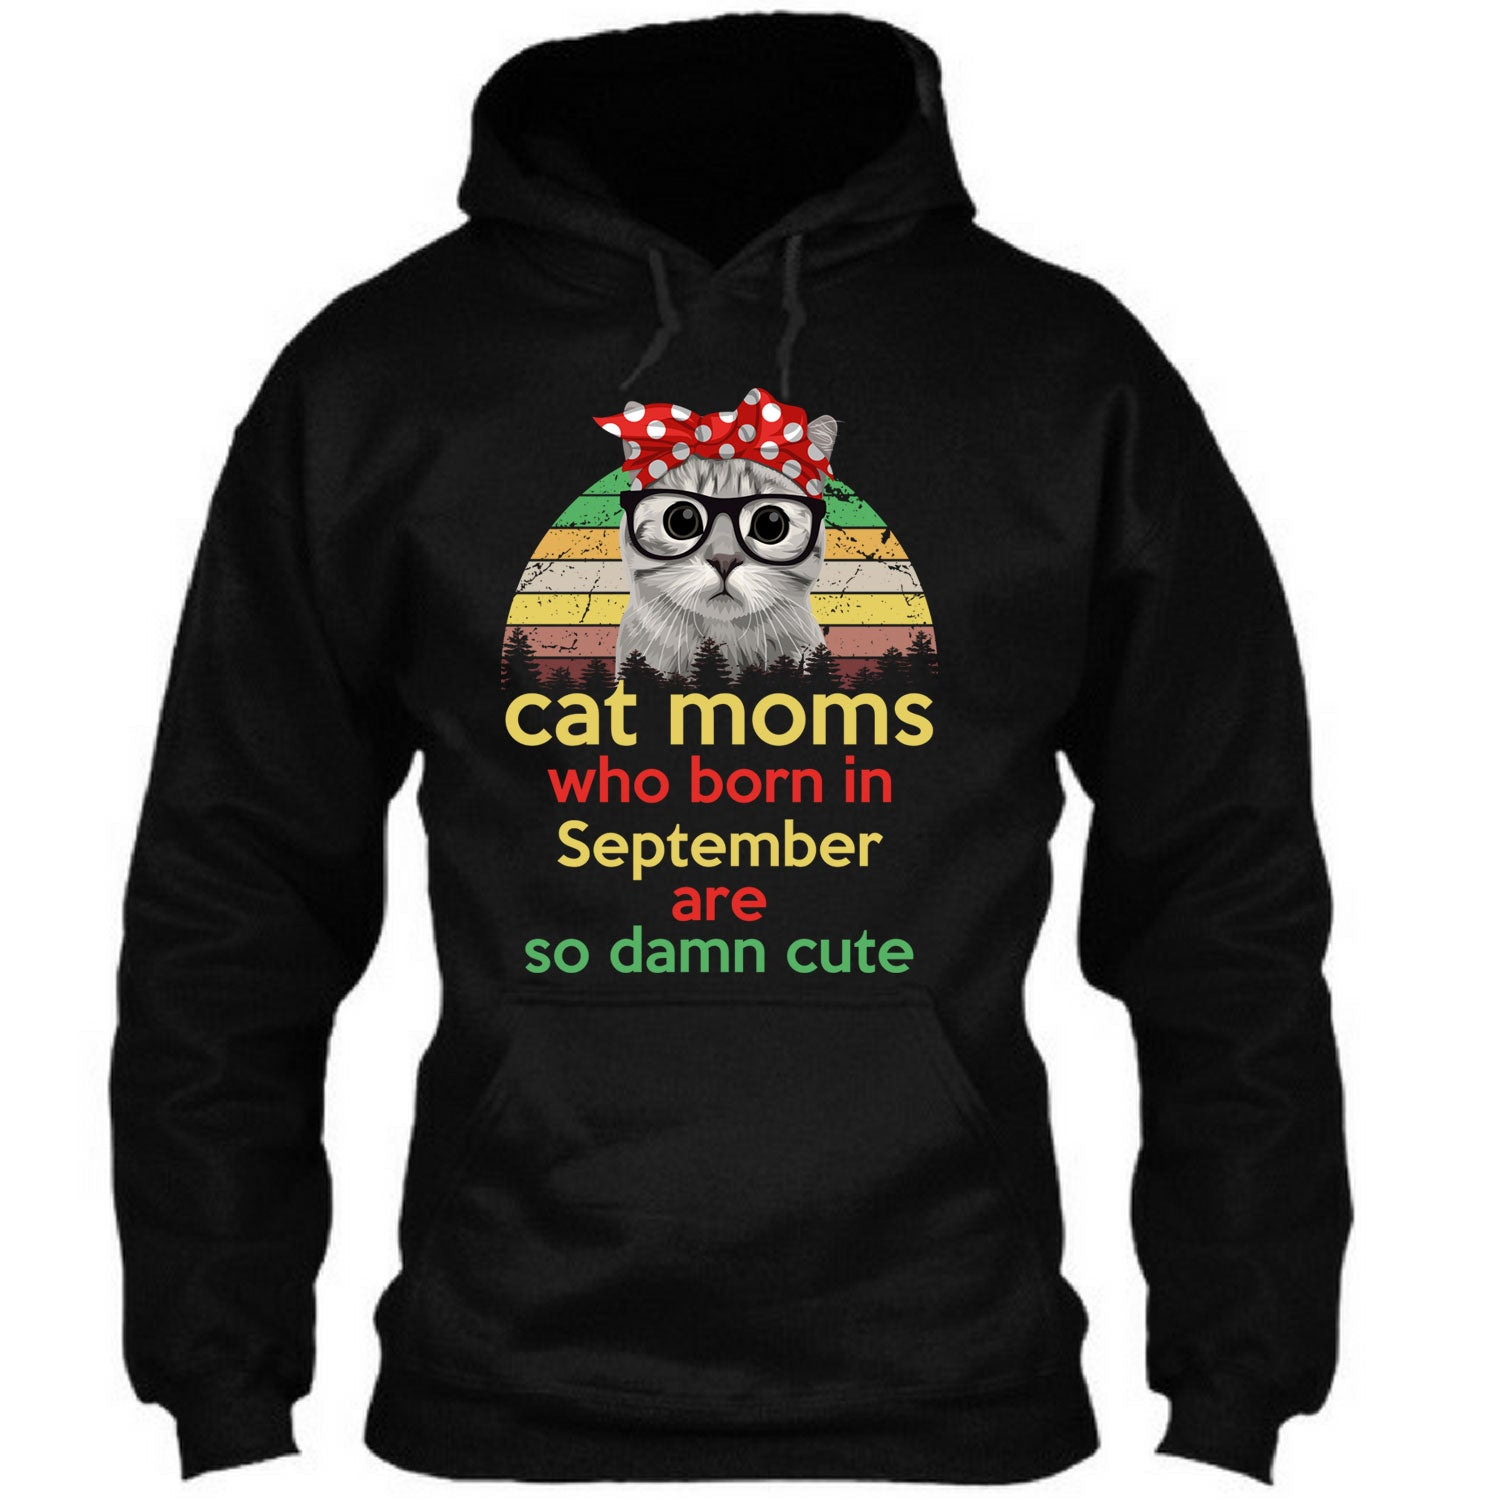 Cat moms who born in September